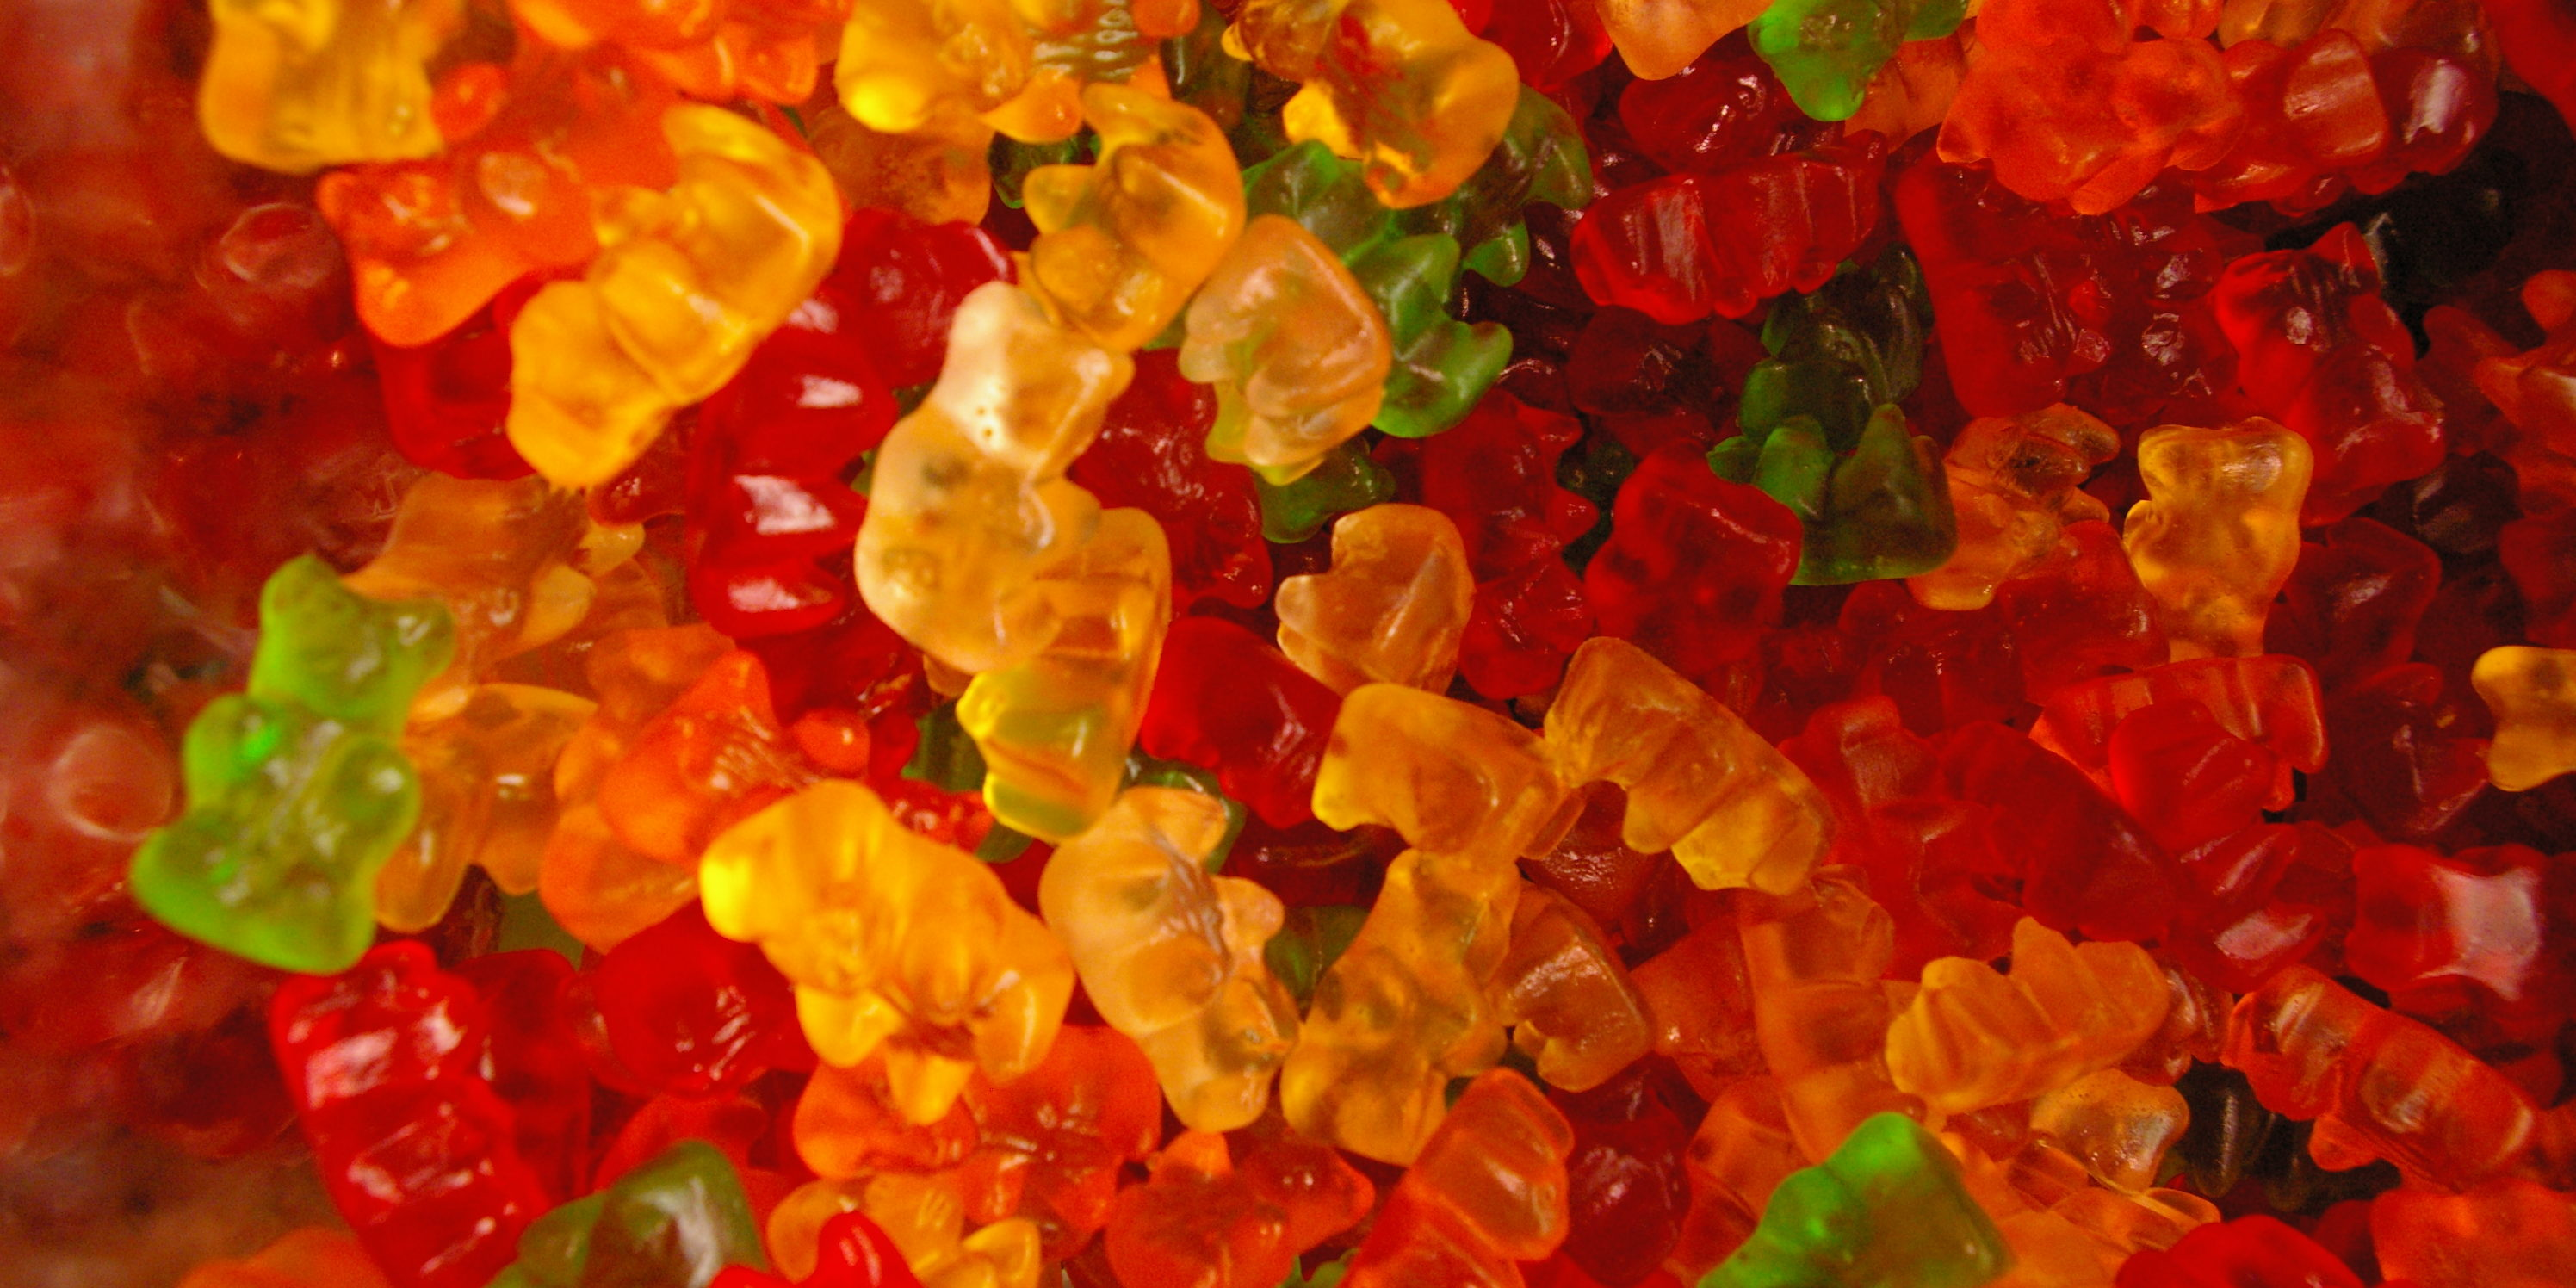 How to make your own delicious weed gummies | Recreational